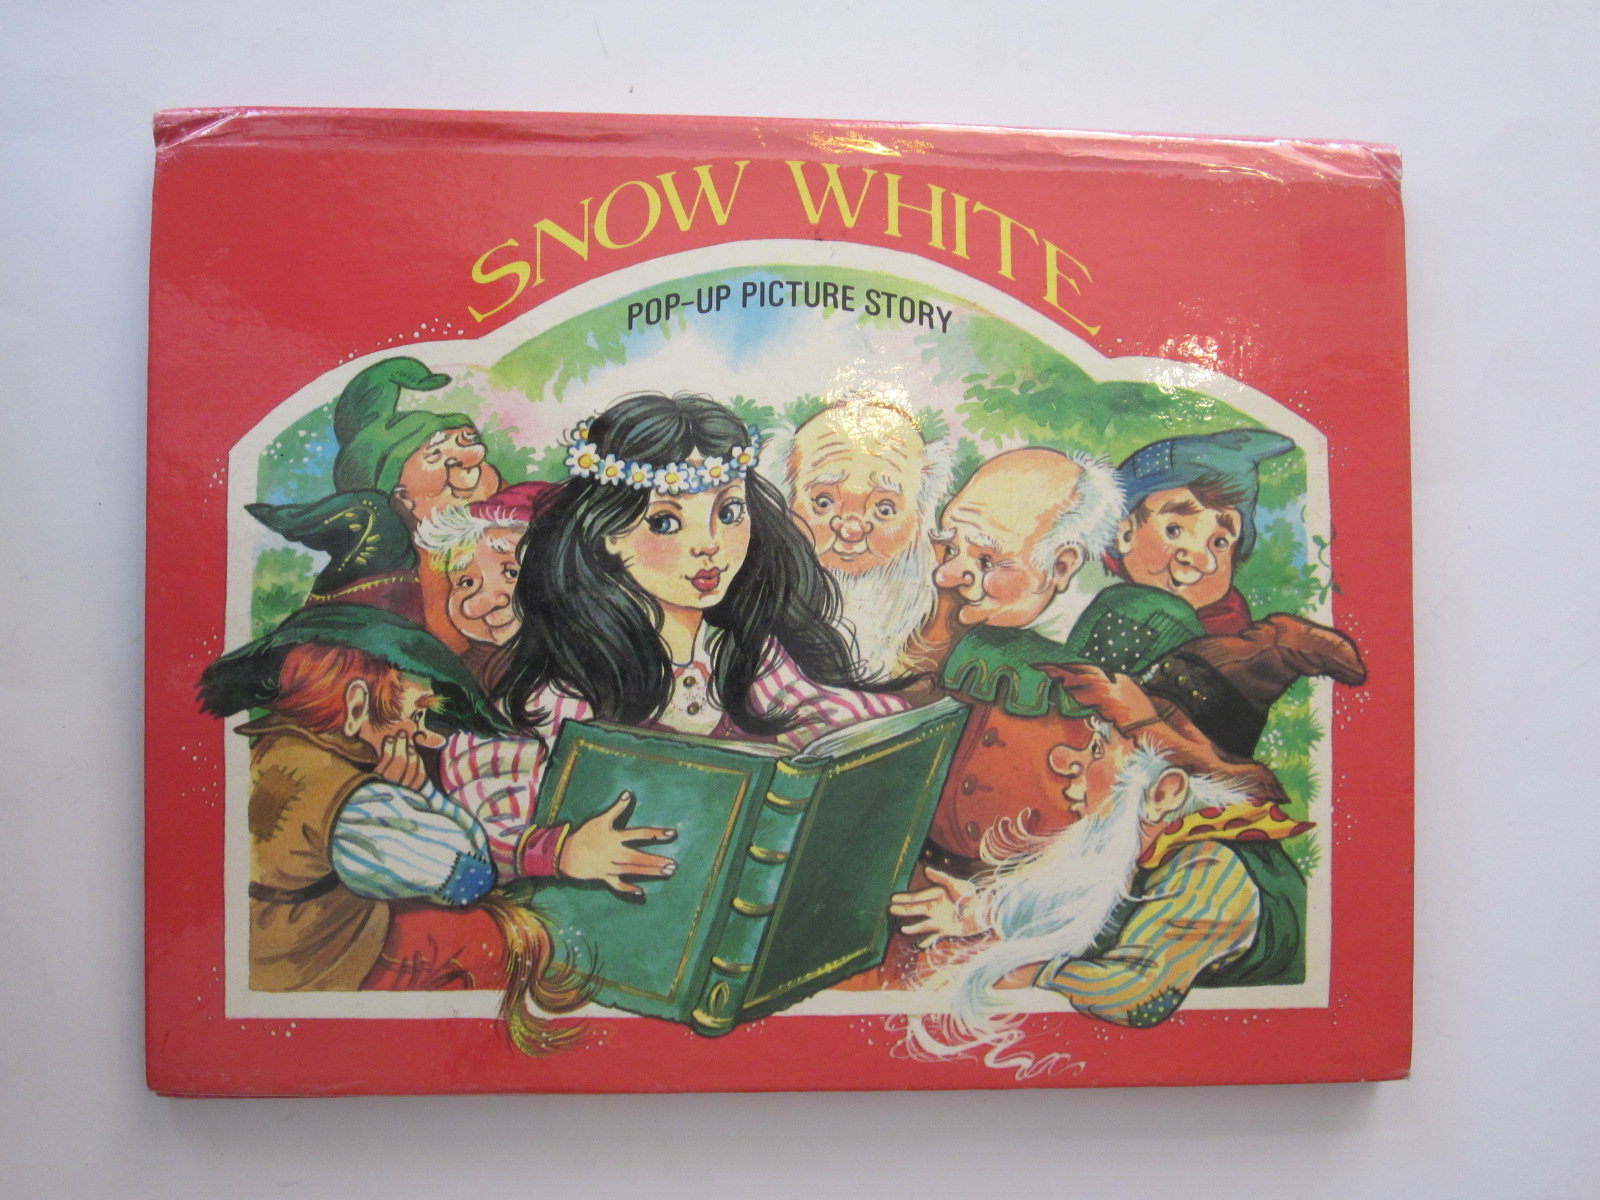 Photo of SNOW WHITE POP-UP PICTURE STORY illustrated by Kubasta, Vojtech published by Brown Watson (STOCK CODE: 1401014)  for sale by Stella & Rose's Books